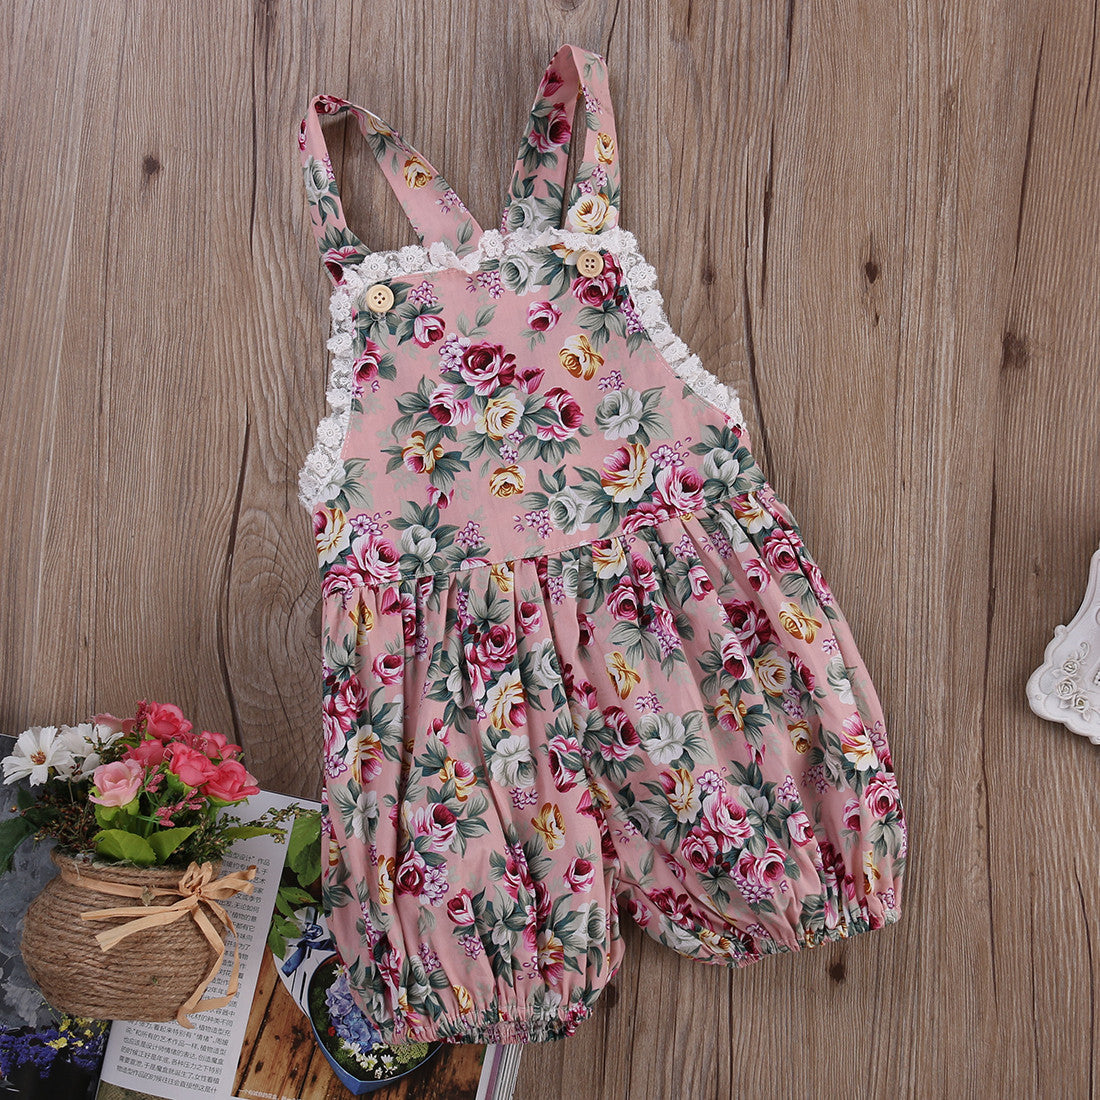 Floral Baby Clothes - MyBabyNMore